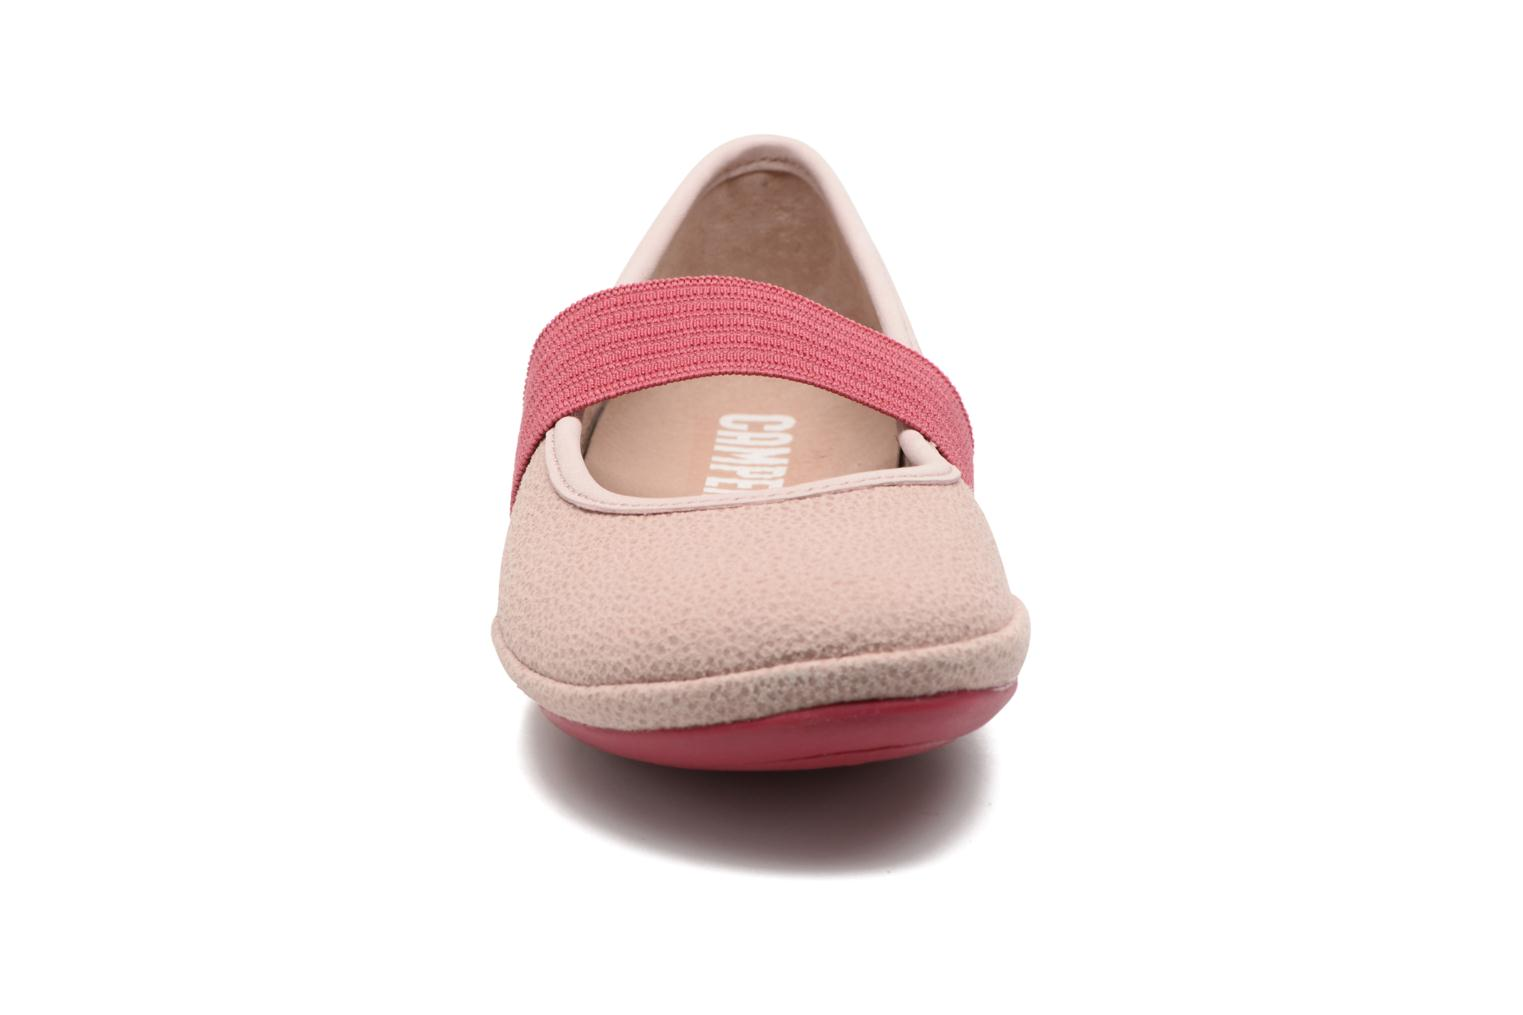 Right 80025 Lt/Pastel Pink